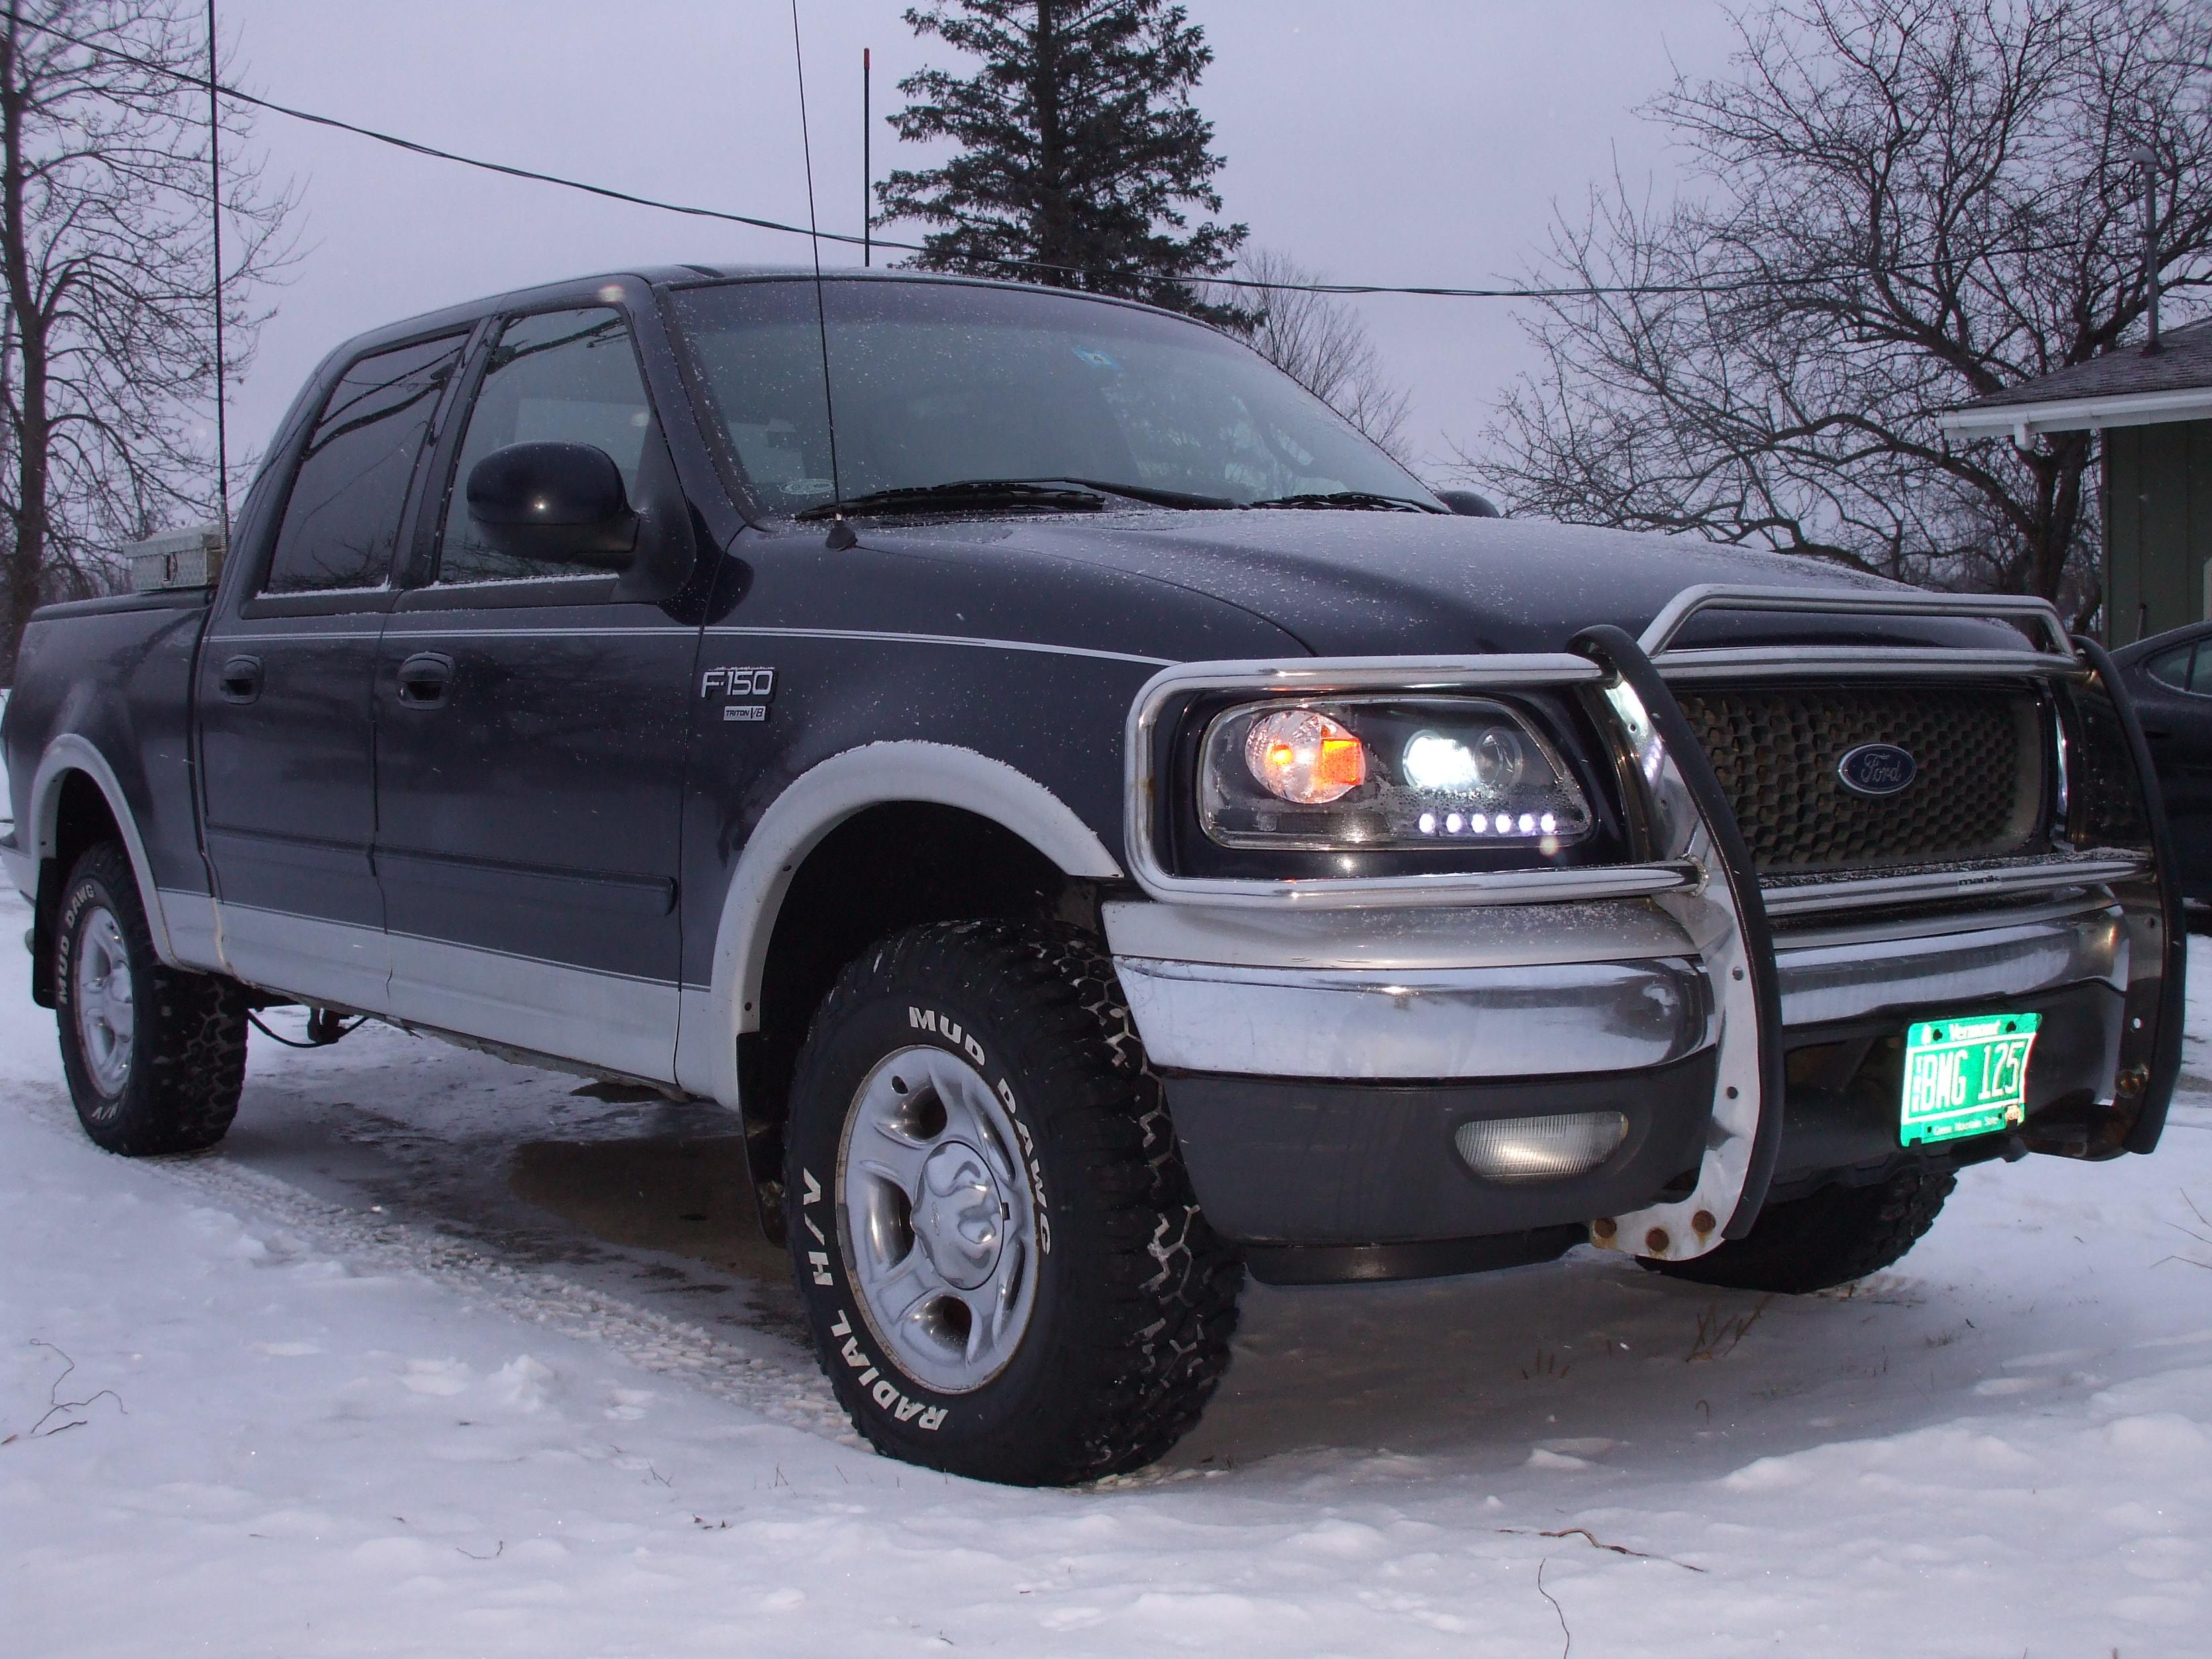 2001 F150 Supercrew >> iceicedavey 2001 Ford F150 SuperCrew Cab Specs, Photos